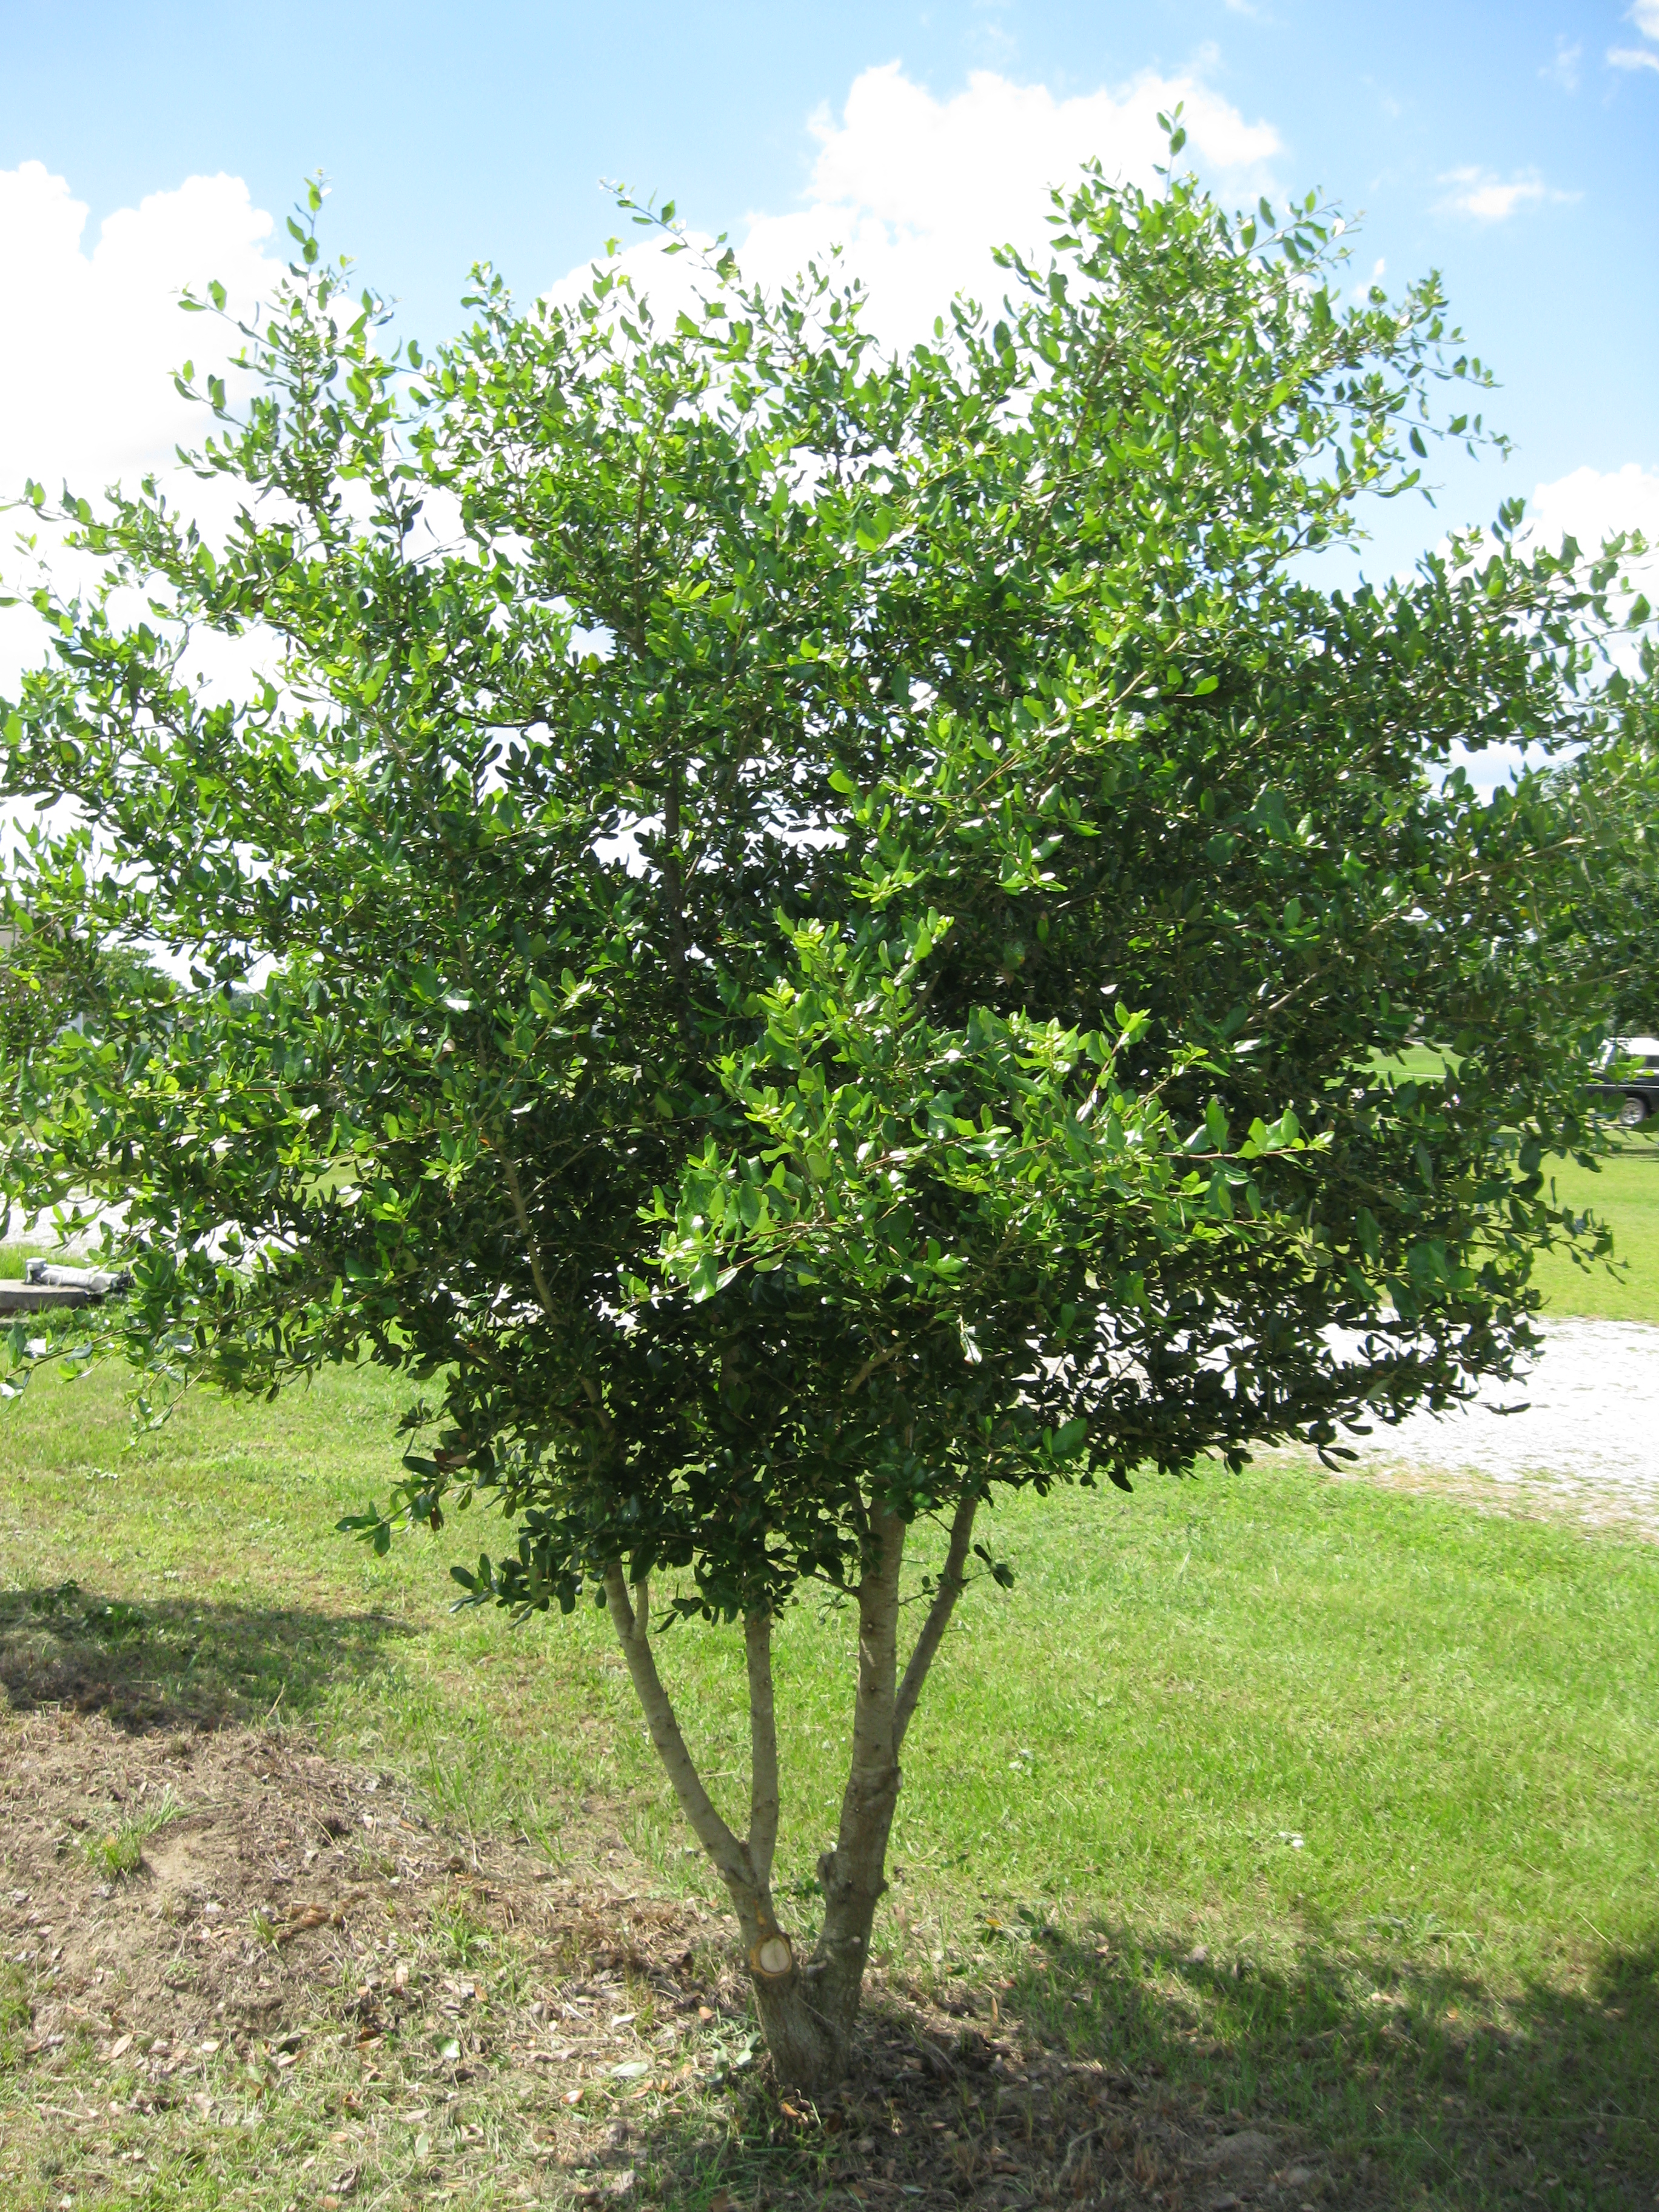 State tree pruning posted